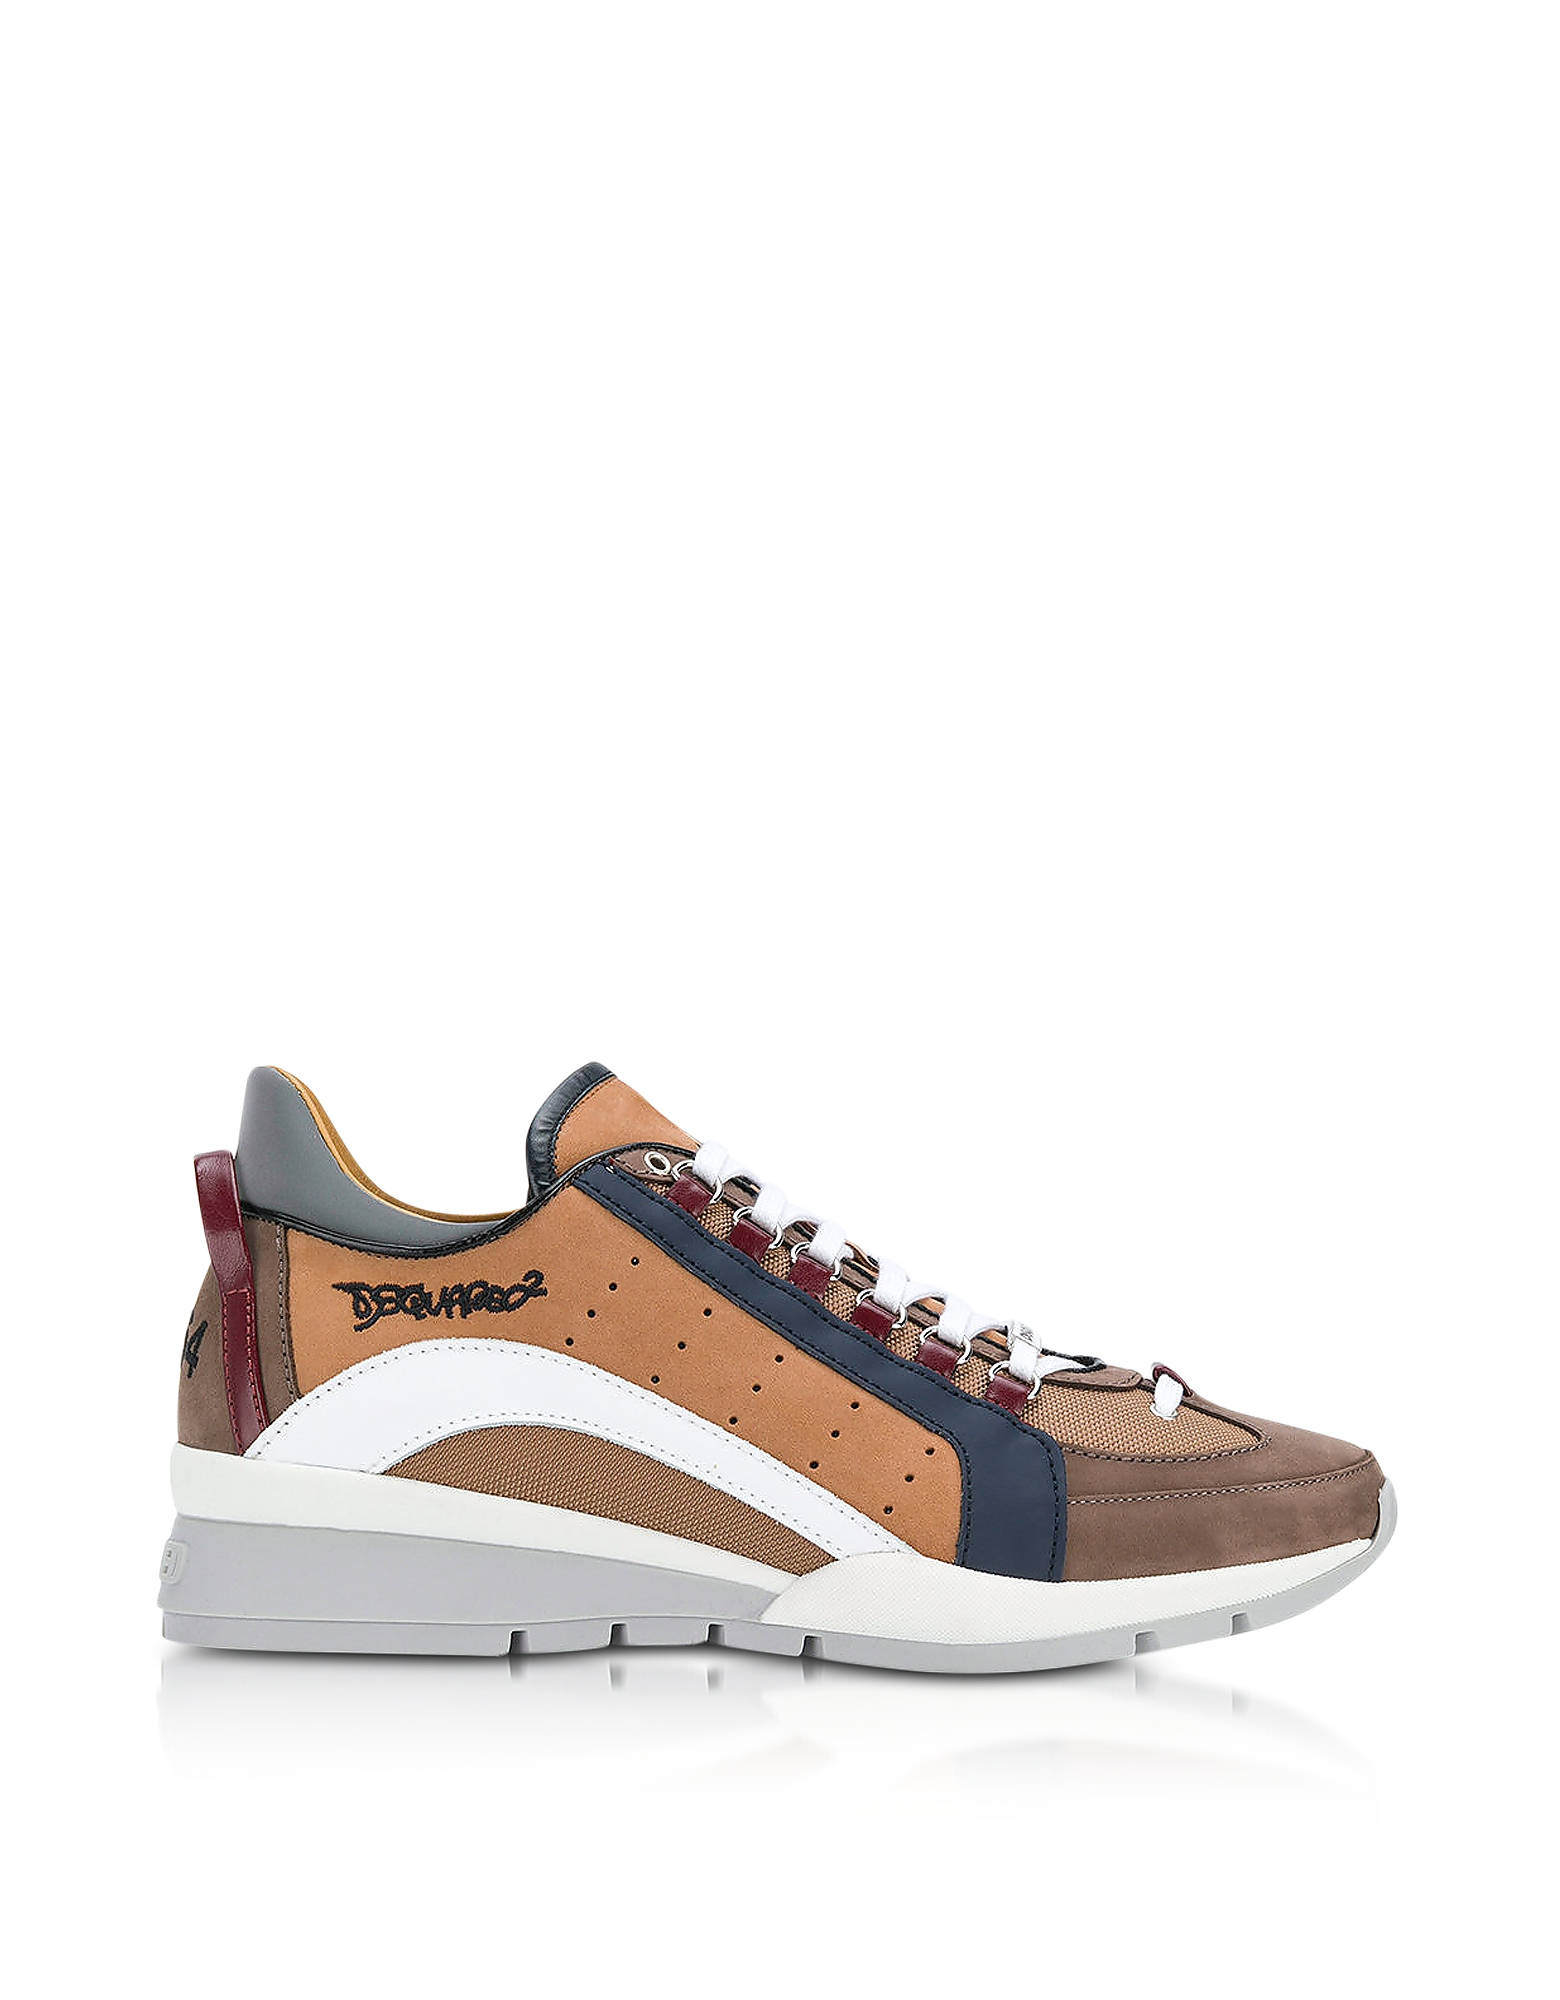 DSquared2 Shoes, Brown Nylon and Gommato Leather Men's Sneakers